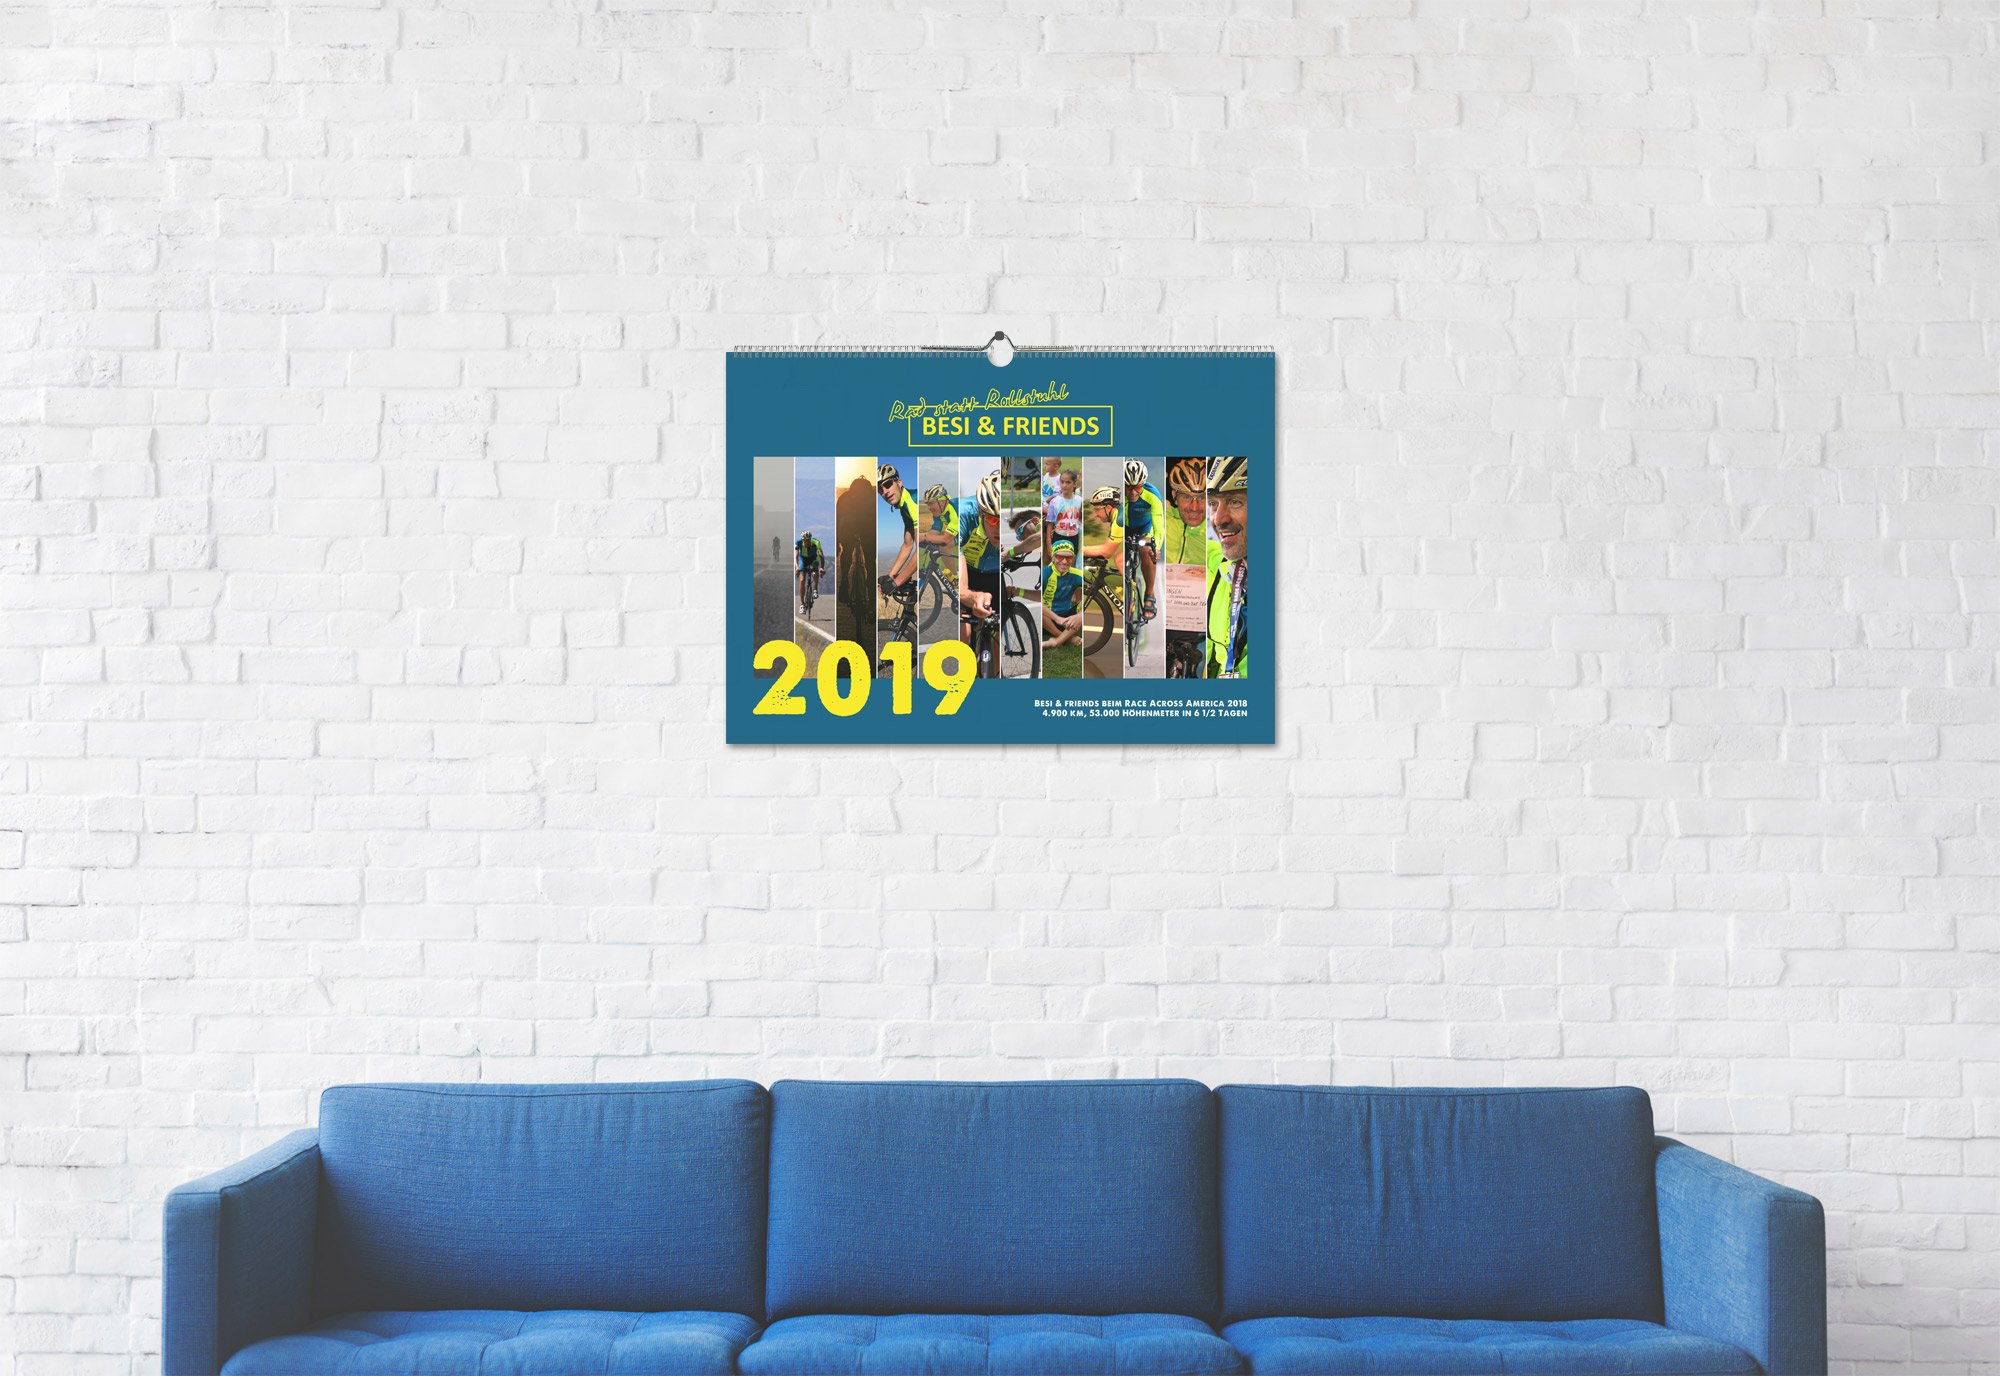 Besi&Friends Kalender 2019